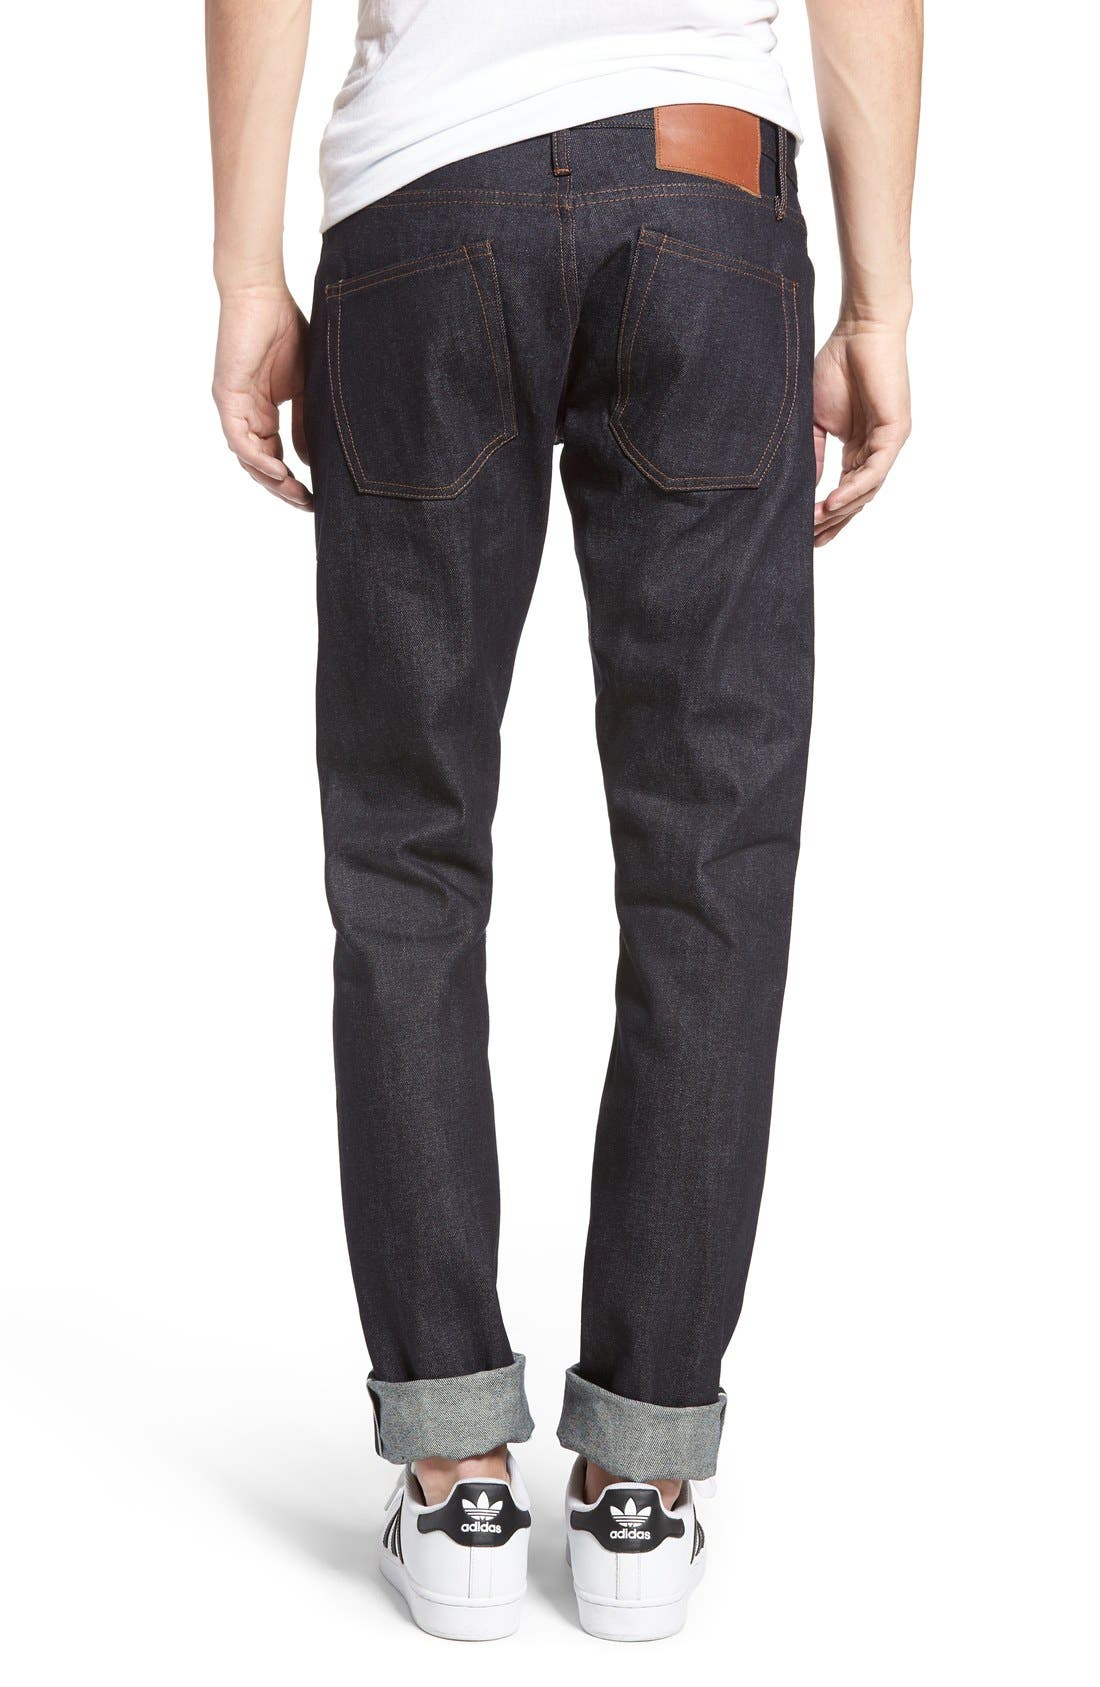 Alternate Image 2  - The Unbranded Brand UB401 Selvedge Skinny Fit Jeans